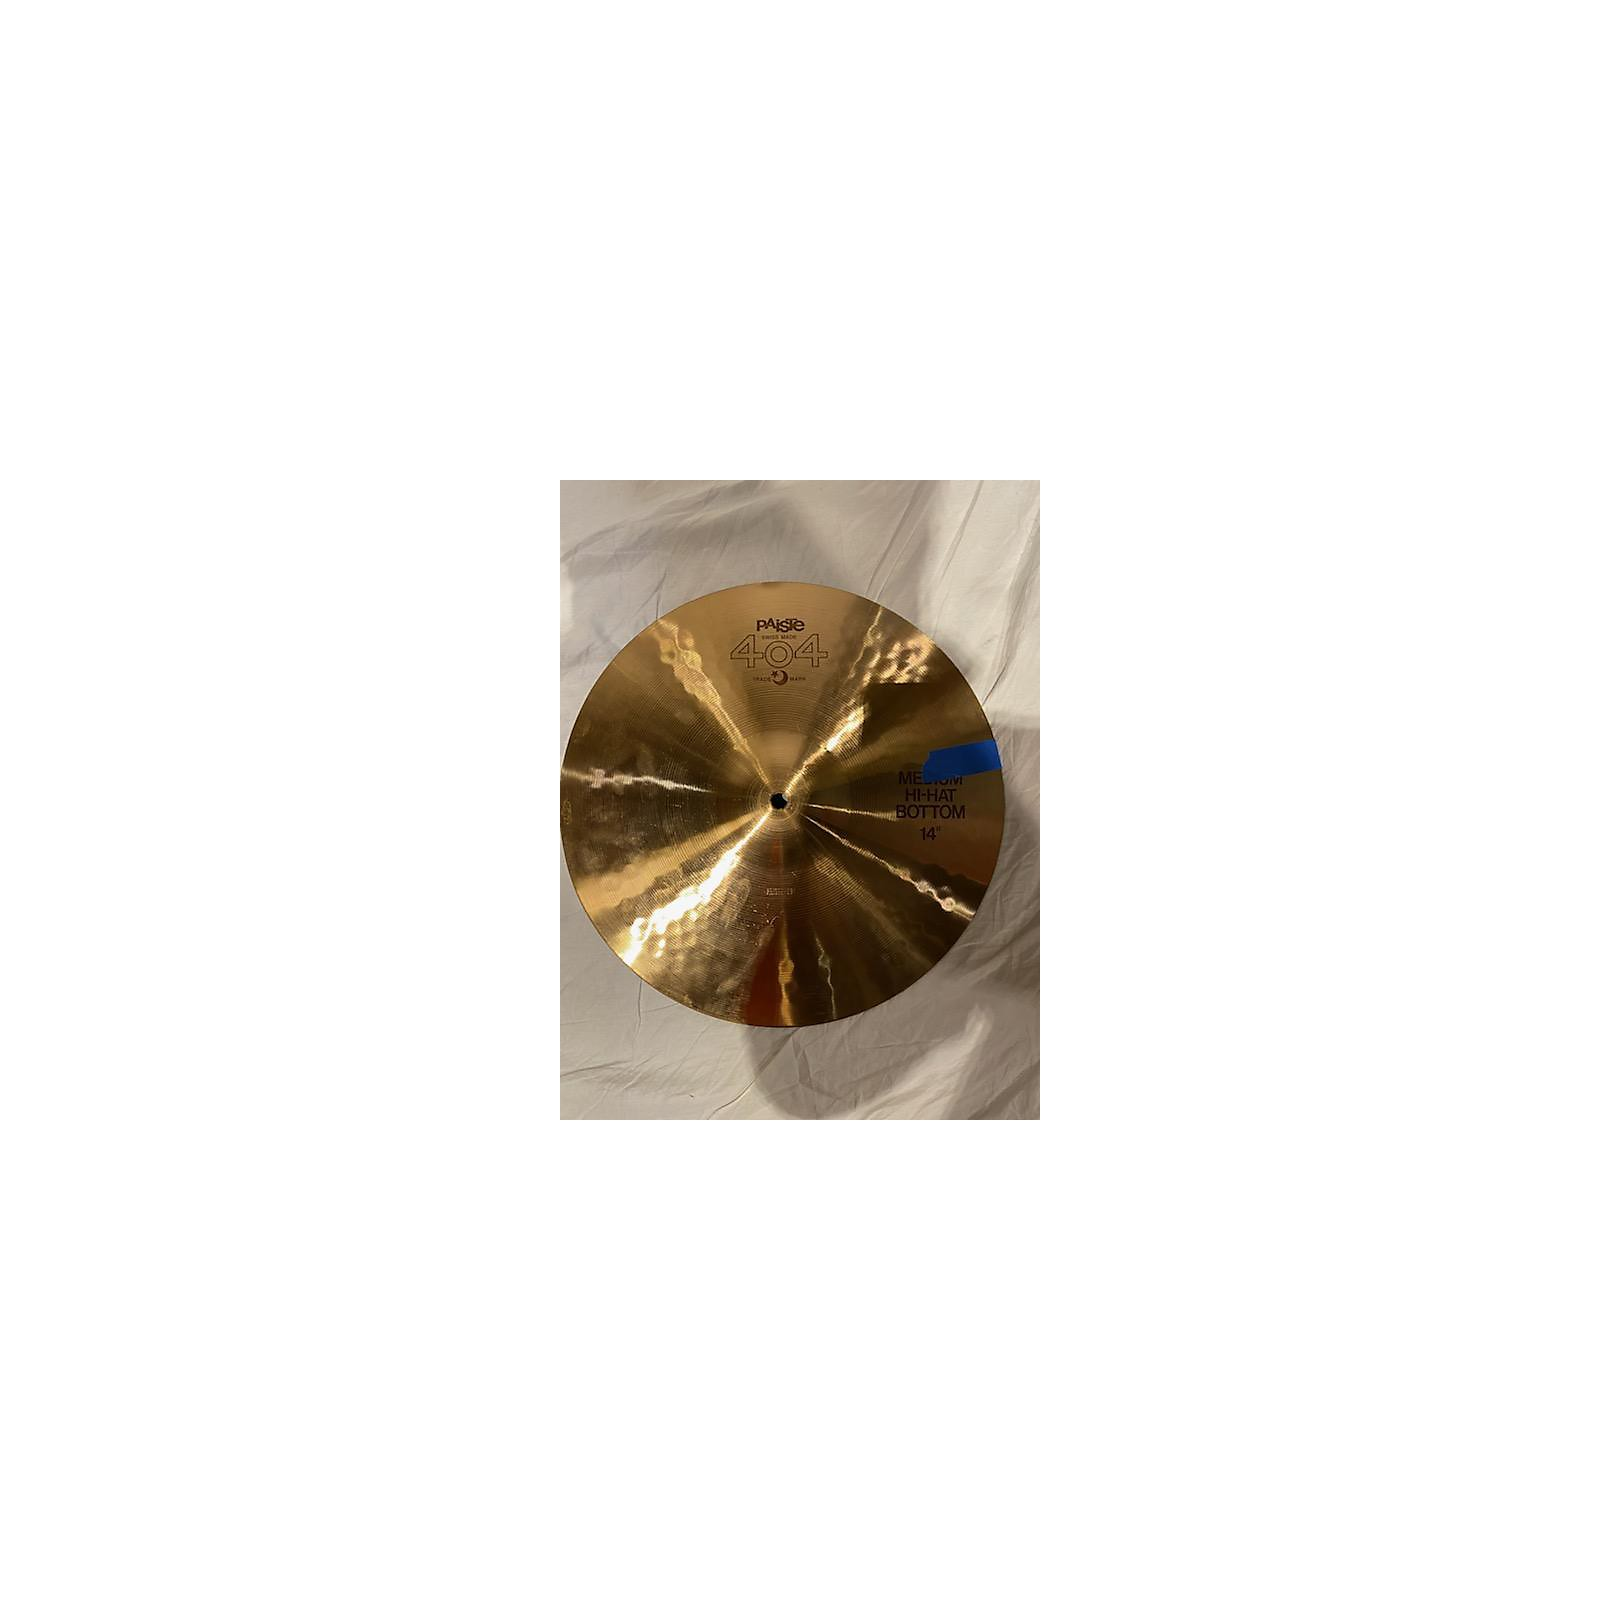 Paiste 14in 404 BROWN LABEL PAIR Cymbal